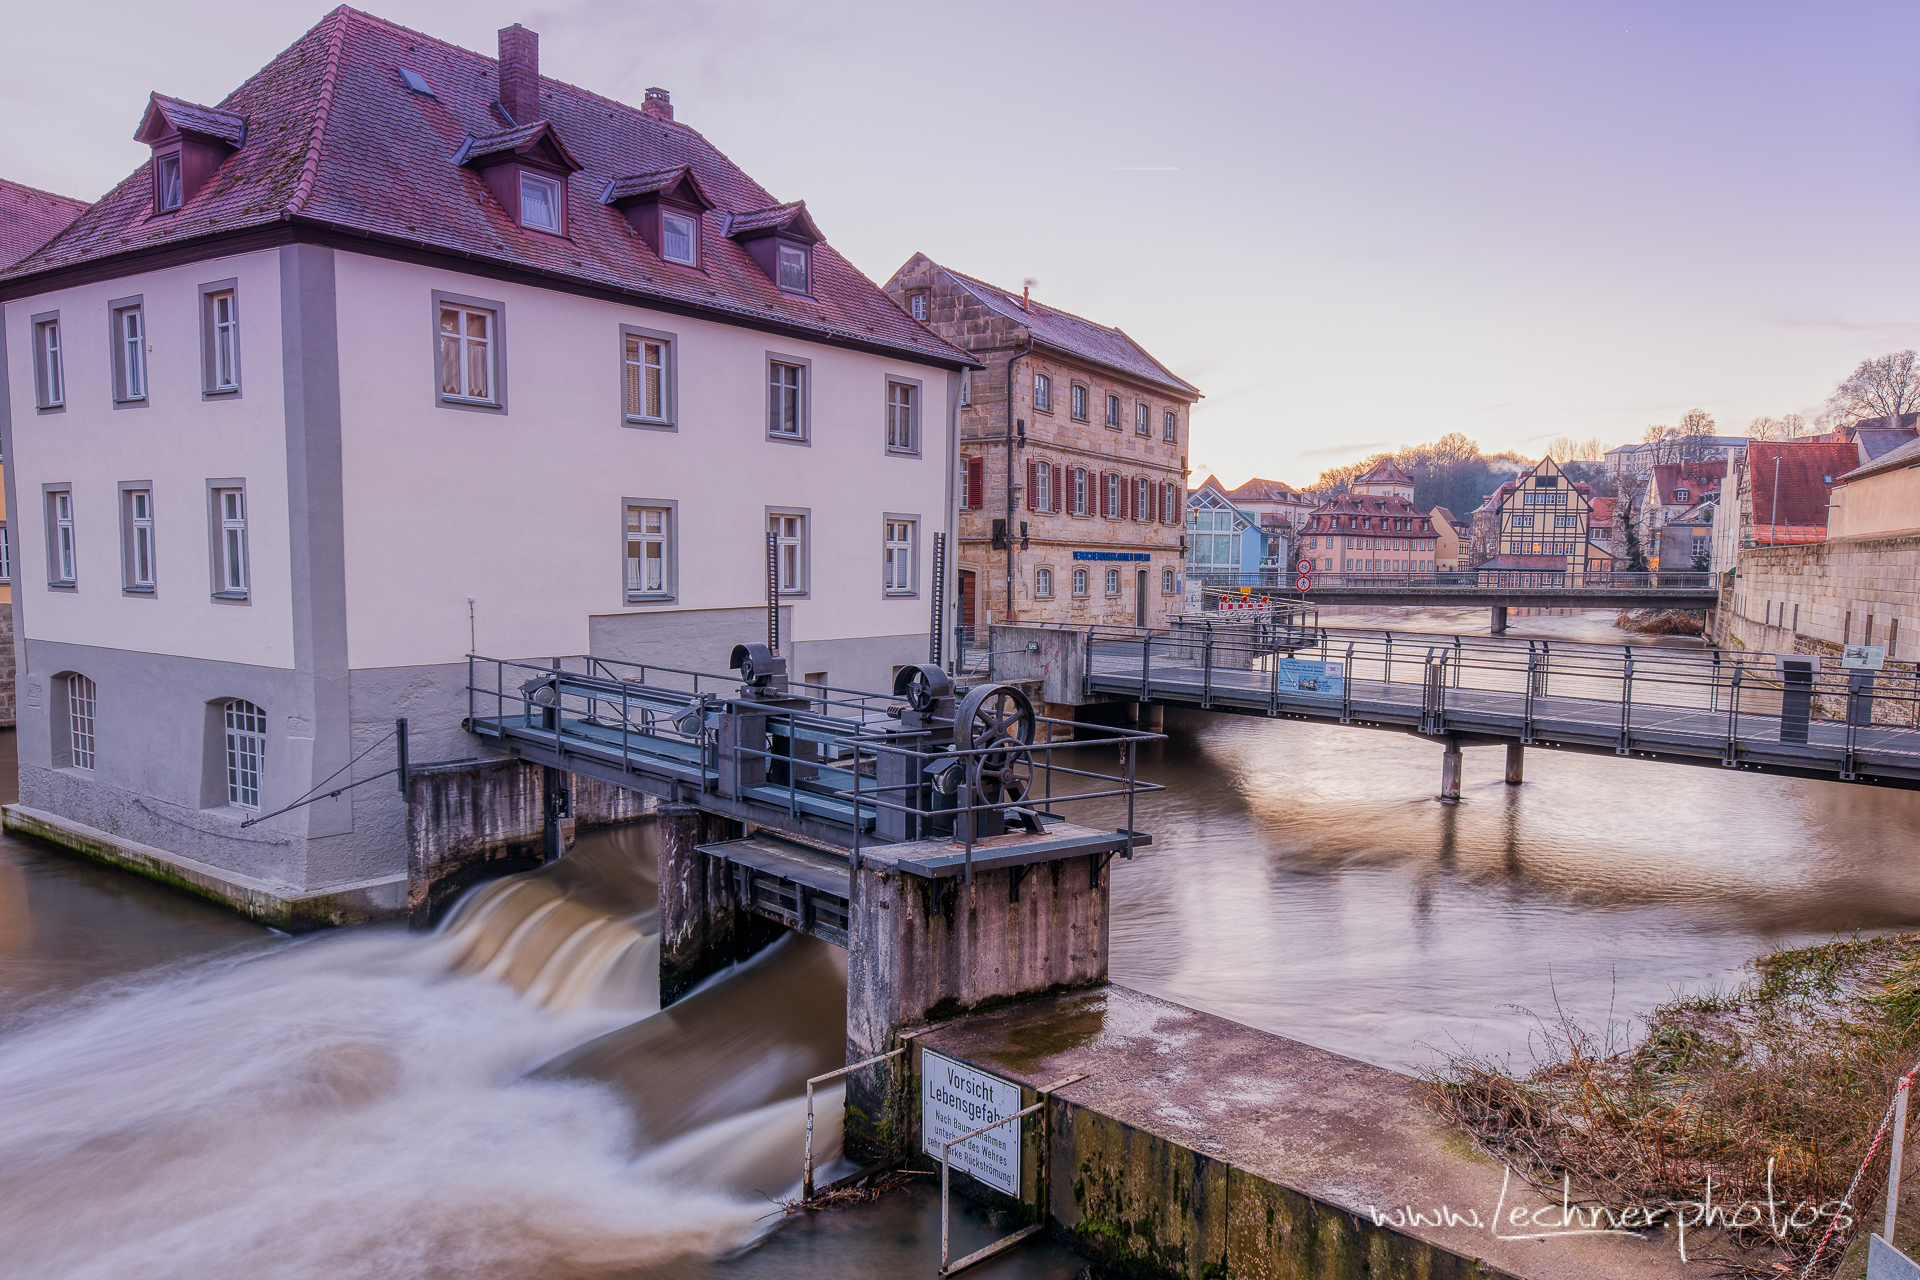 Water dam over the river Regnitz, Germany